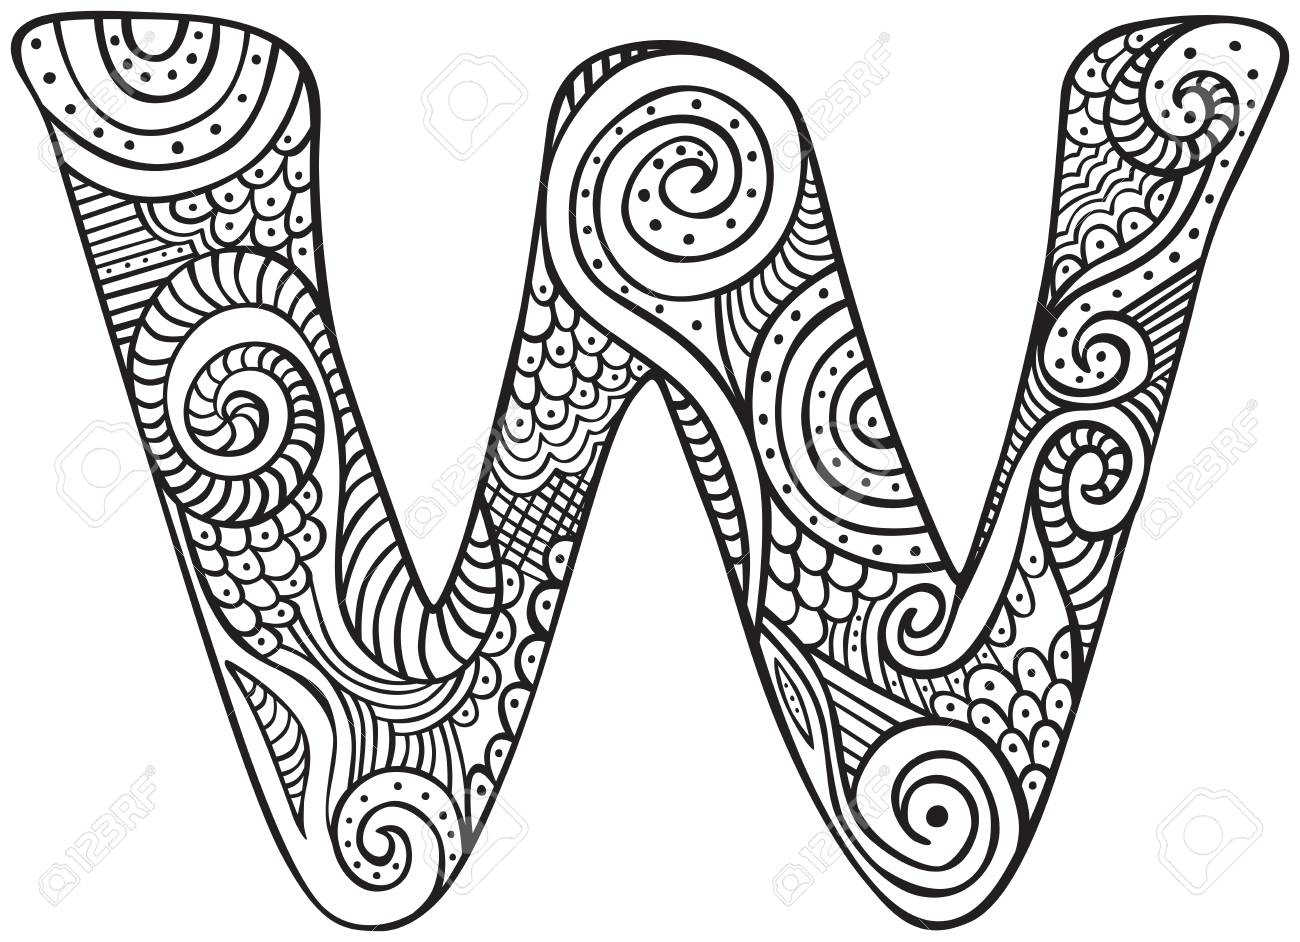 Hand drawn capital letter w in black coloring sheet for adults stock vector 90585632